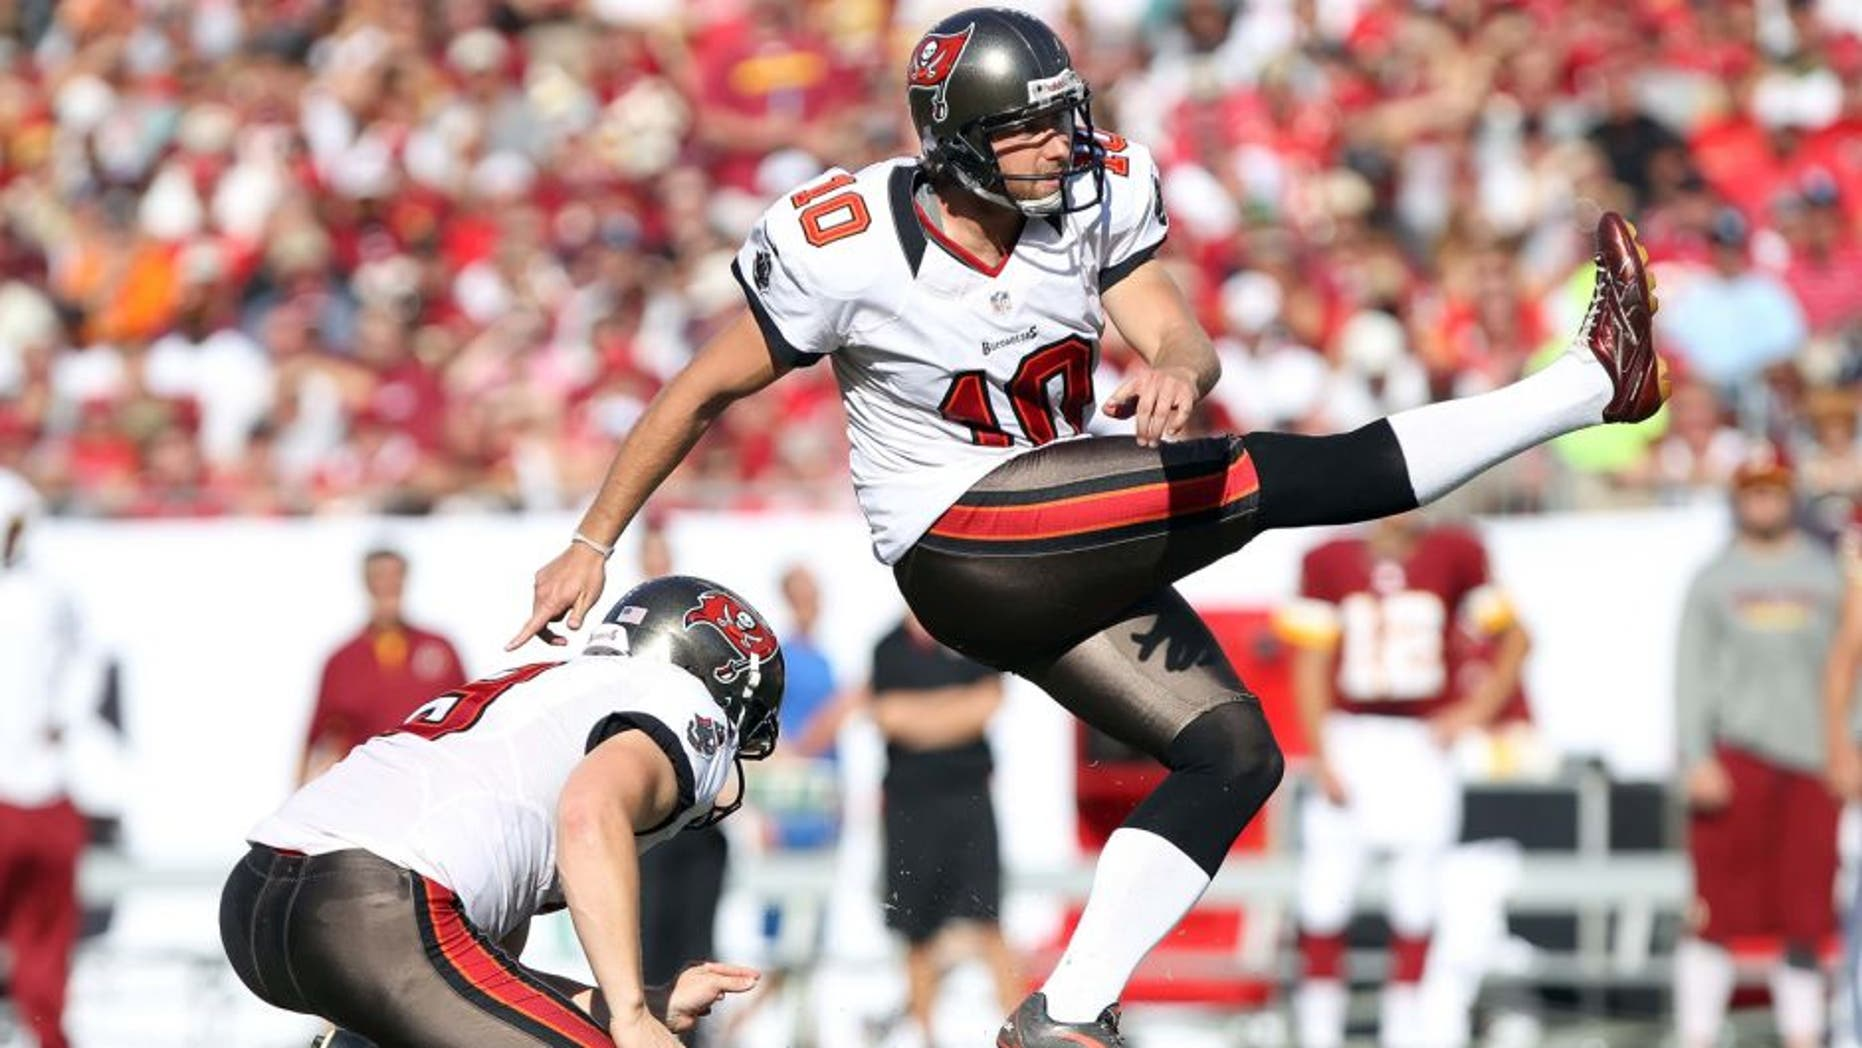 September 30, 2012; Tampa, FL, USA; Tampa Bay Buccaneers kicker Connor Barth (10) kicks a field goal during the first quarter against the Washington Redskins at Raymond James Stadium. Mandatory Credit: Kim Klement-USA TODAY Sports